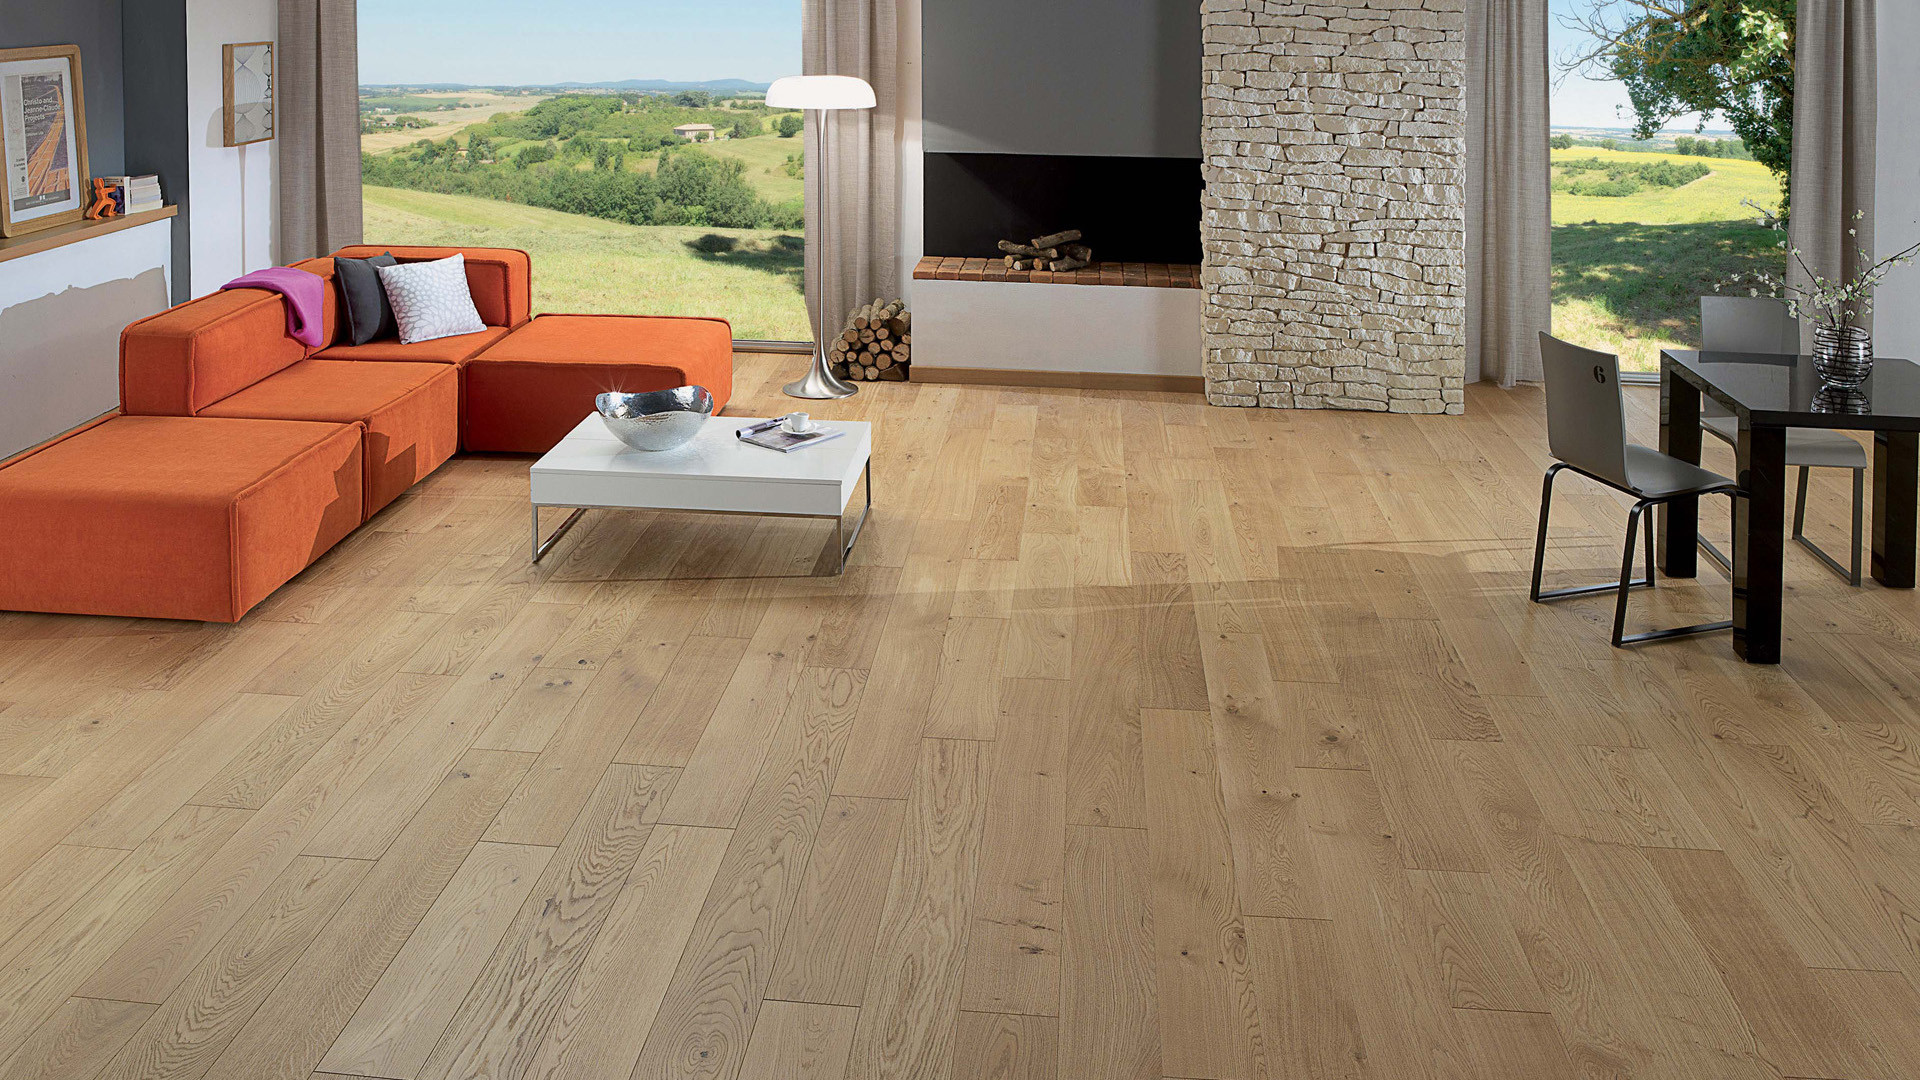 Parquet en French oak Authentic Topaze 14 mm